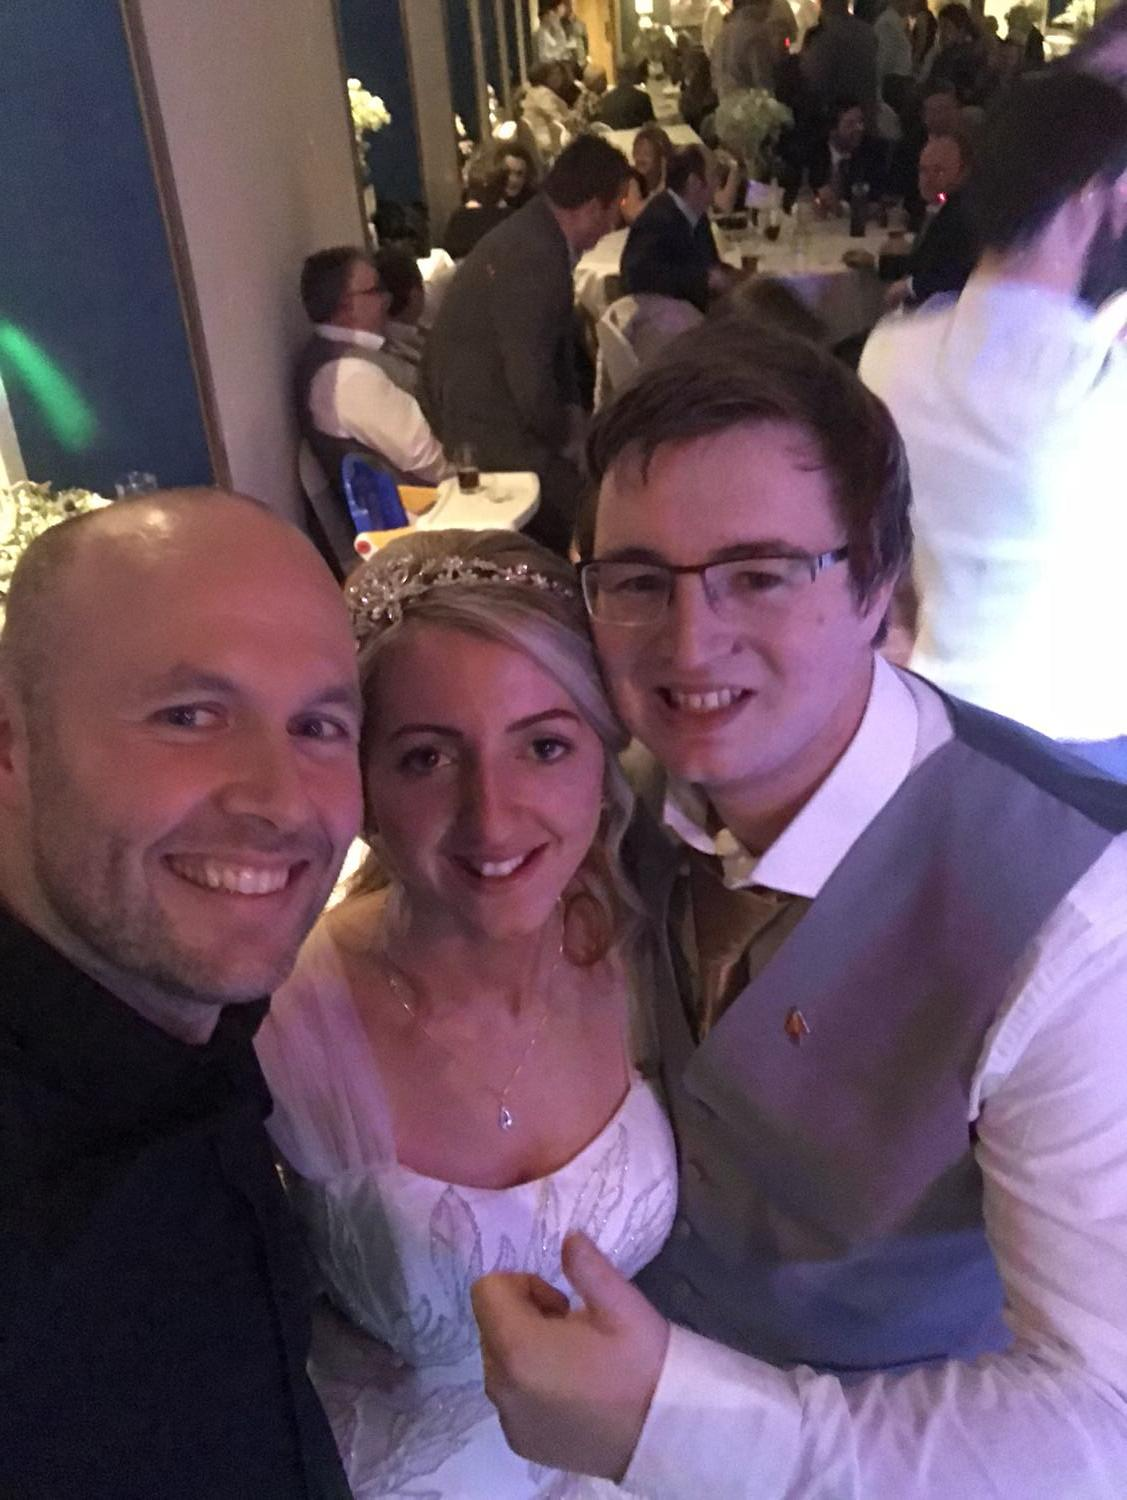 another selfie with the happy couple